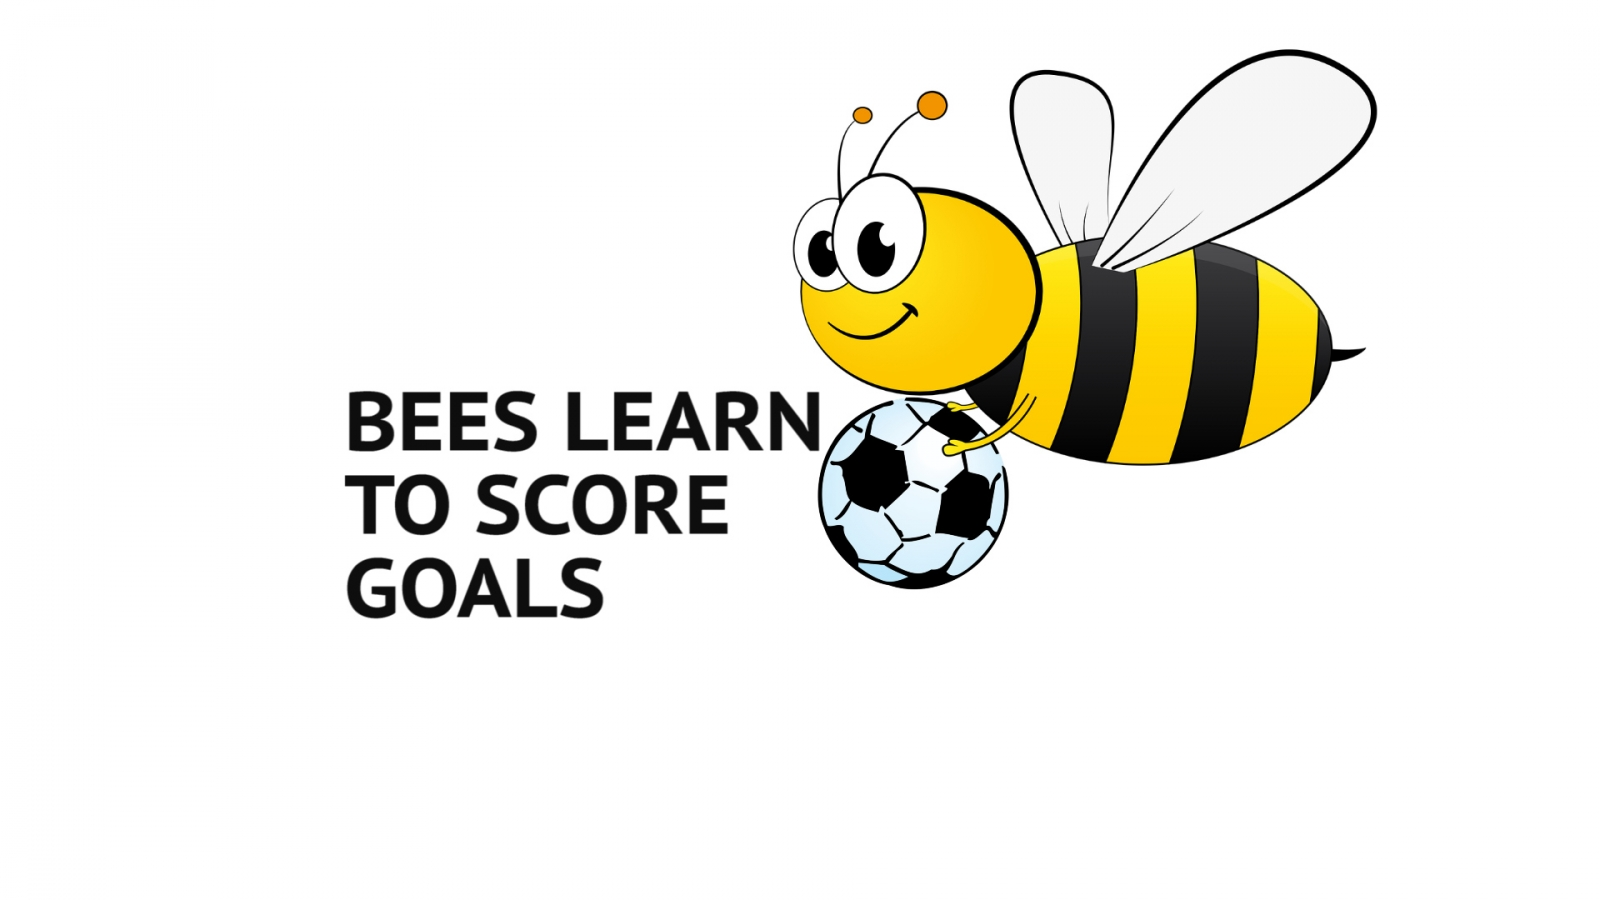 Scientists train bumblebees to score goals with tiny footballs for treats